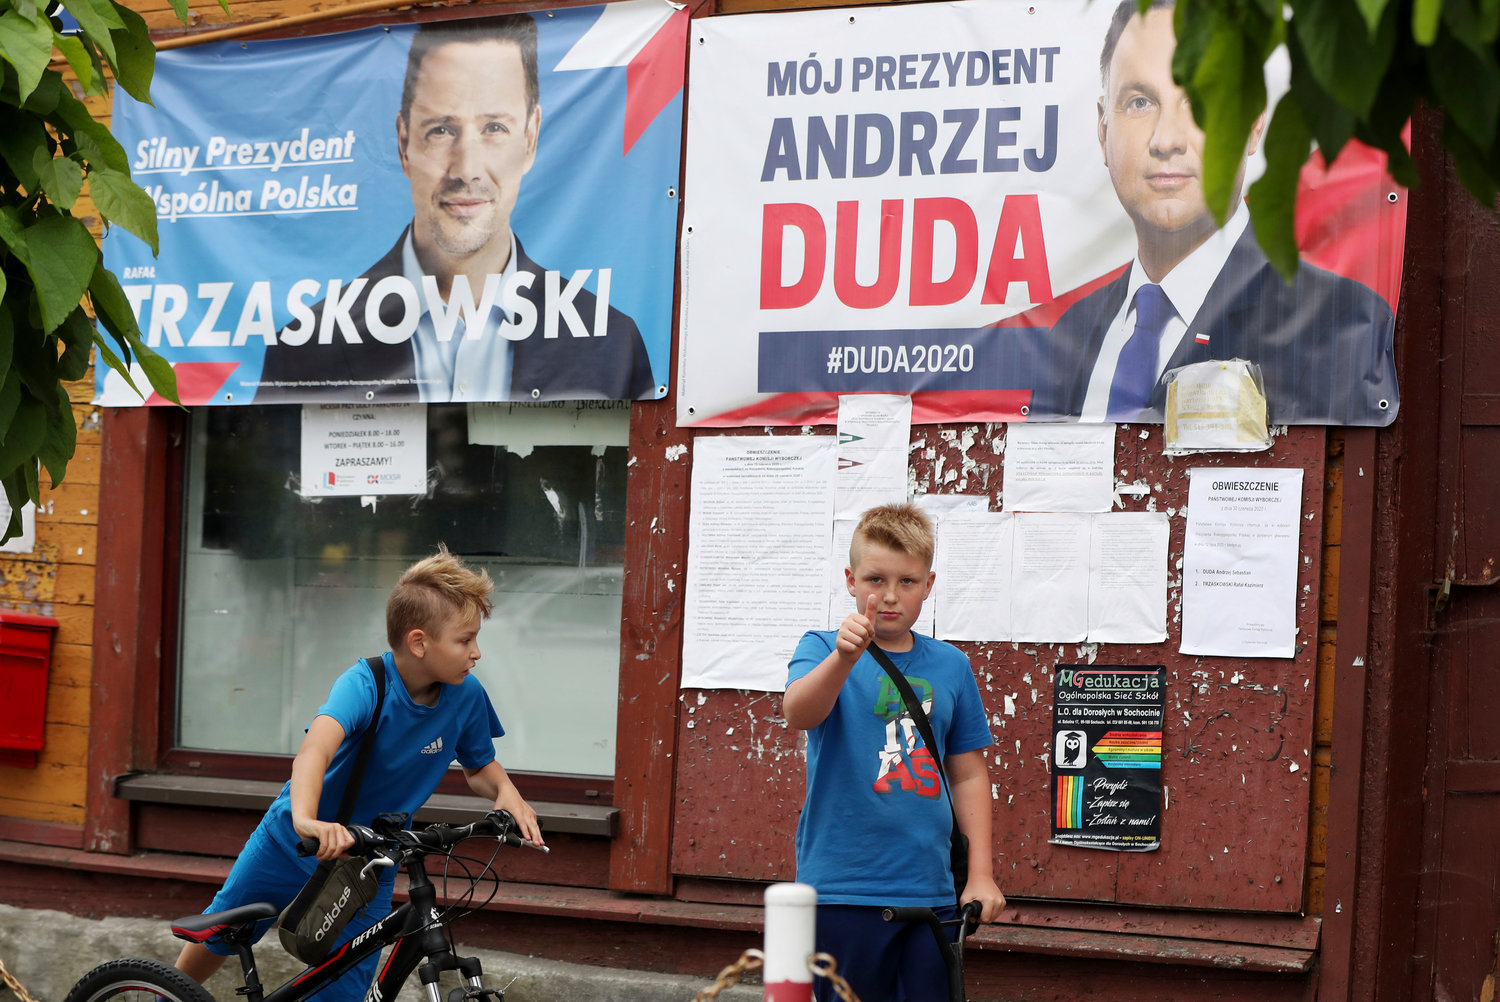 In this Thursday, July 9, 2020 photo election campaign posters of incumbent conservative president, Andrzej Duda, right, and his challenger, the liberal Warsaw mayor Rafal Trzaskowski, for a tight presidential election runoff on Sunday, July 12, 2020 are seen in Raciaz, Poland. (AP Photo/Czarek Sokolowski)